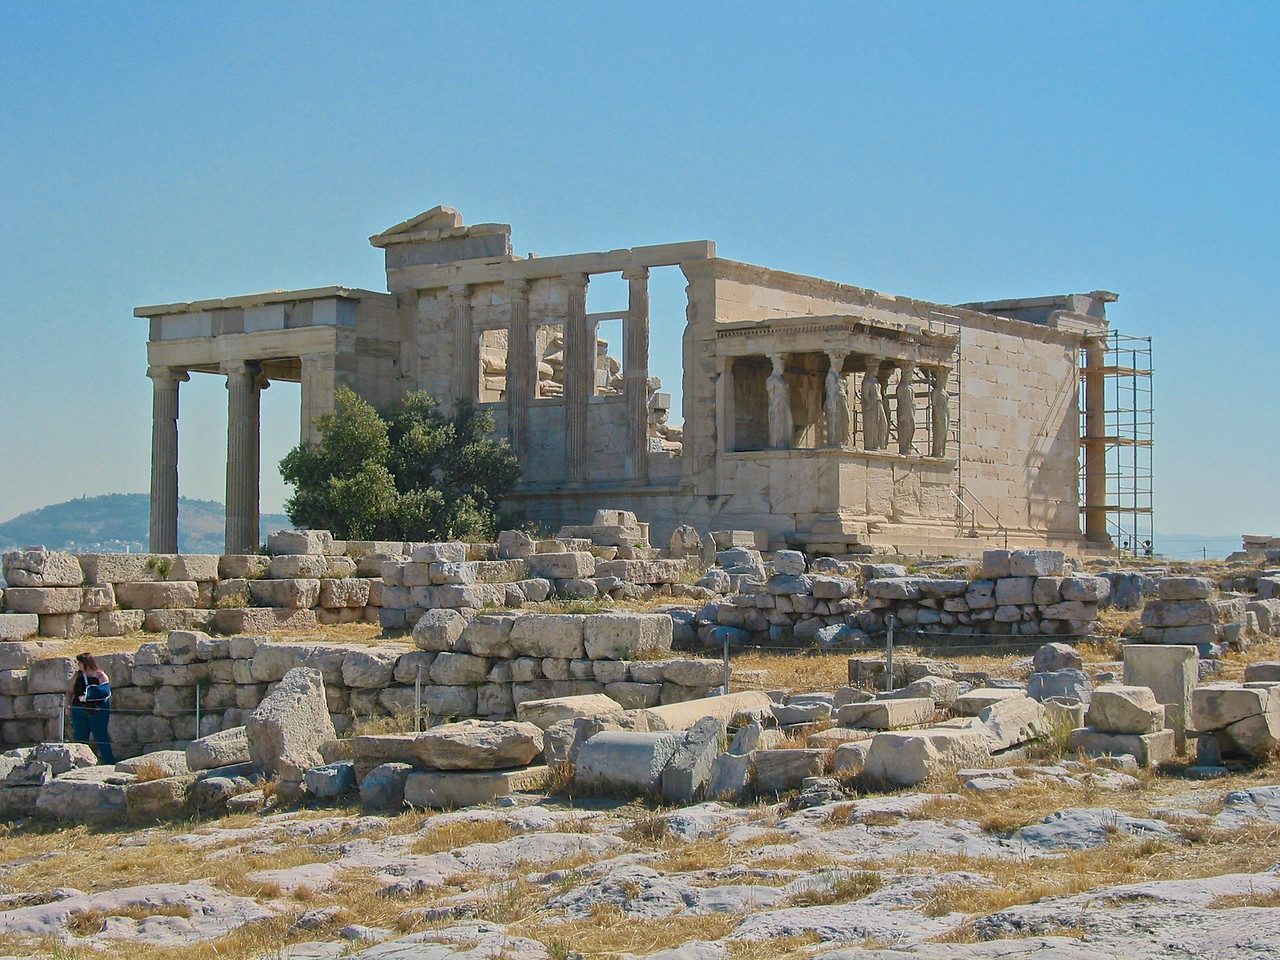 The Erechtheion is an ancient Greek temple on the north side of the Acropolis of Athens in Greece.<br /> <br /> The temple as seen today was built between 421 and 406 BC. Its architect may have been Mnesicles, and it derived its name from a shrine dedicated to the legendary Greek hero Erichthonius. The sculptor and mason of the structure was Phidias, who was employed by Pericles to build both the Erechtheum and the Parthenon. Some have suggested that it may have been built in honor of the legendary king Erechtheus, who is said to have been buried nearby. Erechtheus was mentioned in Homer's Iliad as a great king and ruler of Athens during the Archaic Period, and Erechtheus and the hero Erichthonius were often syncretized.